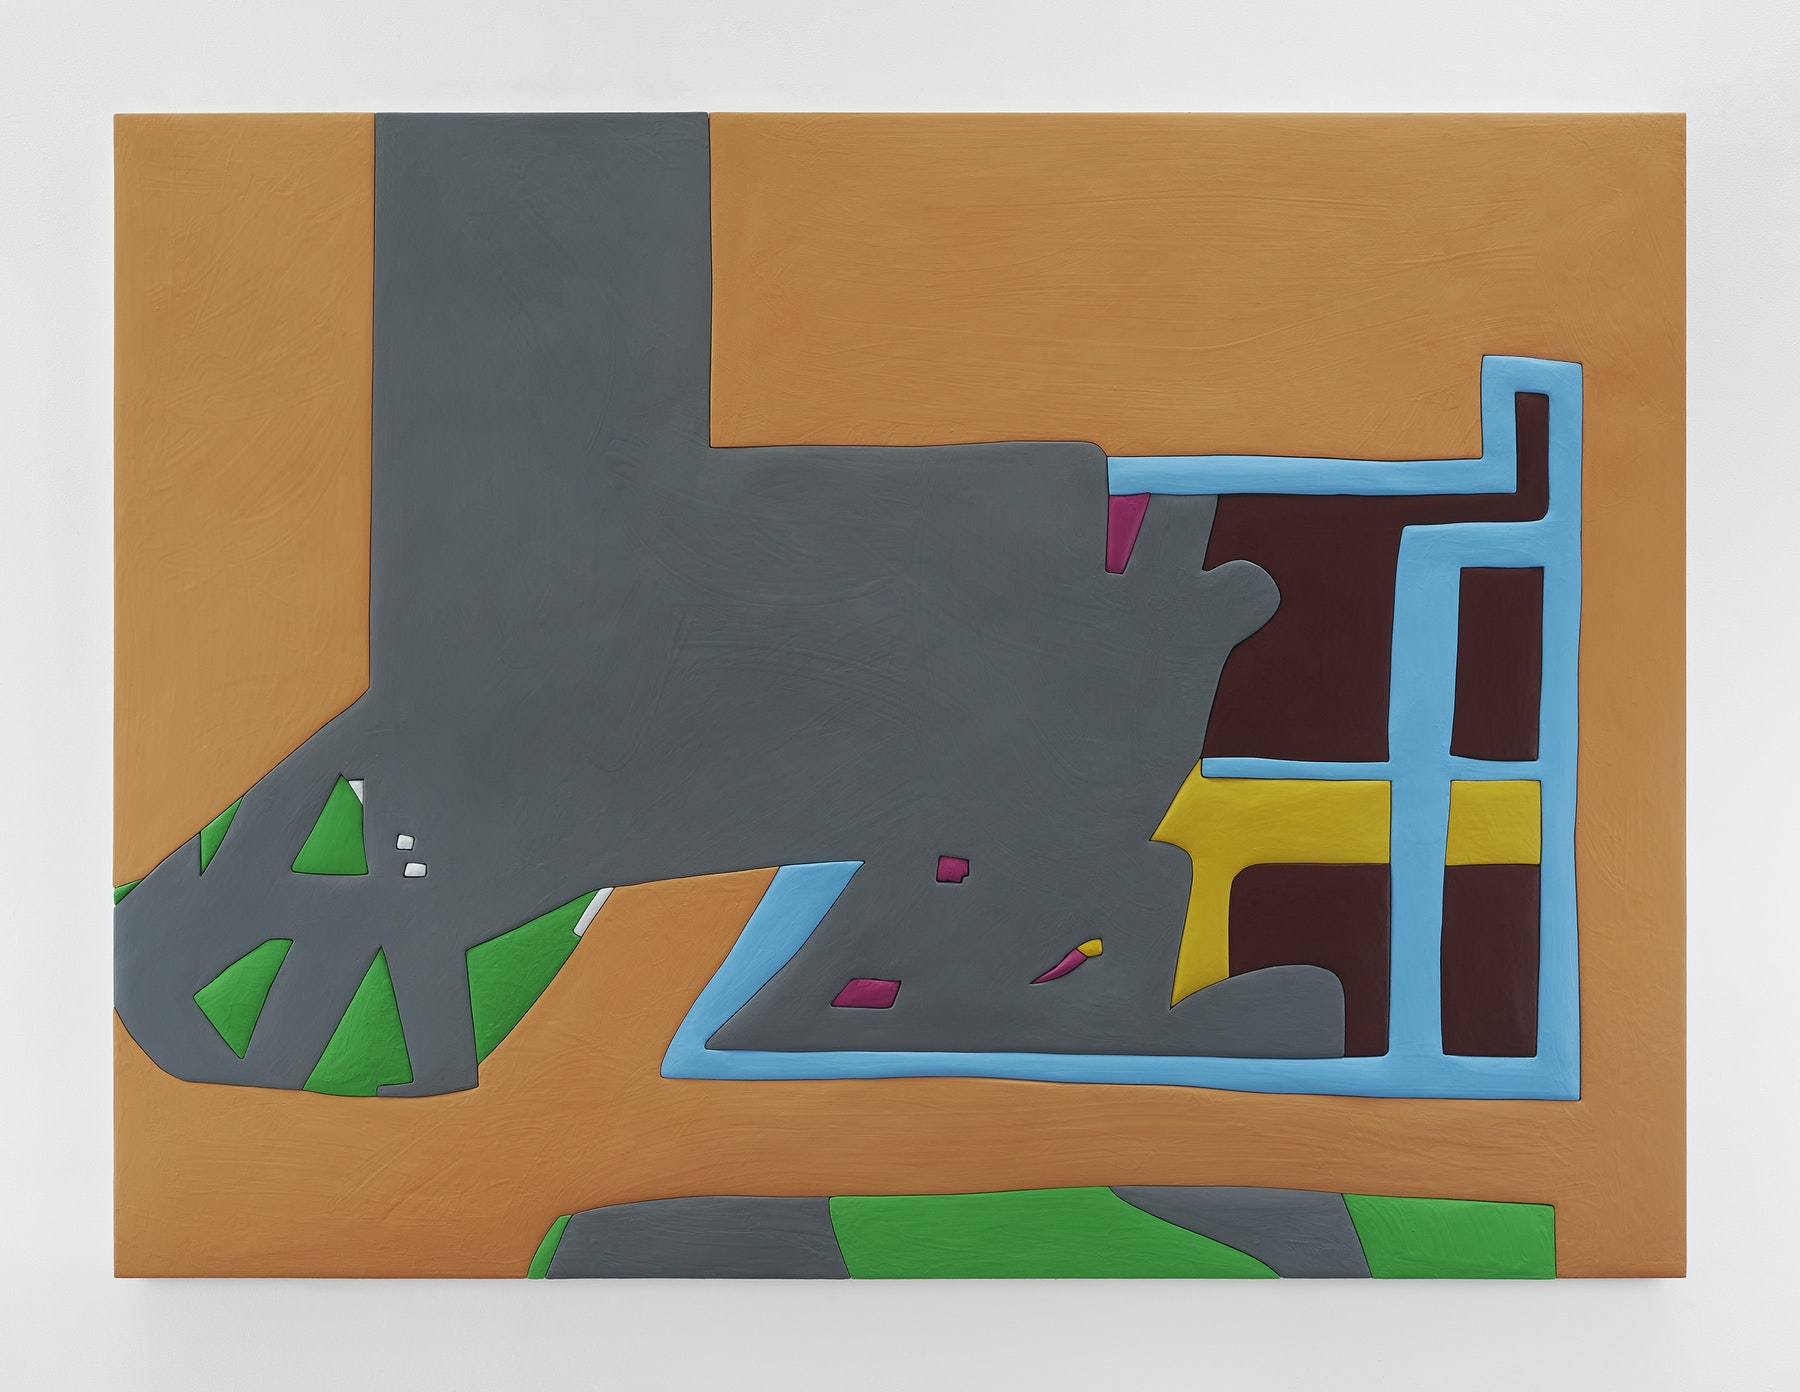 """Sadie Benning """"Untitled 5,"""" 2019 Wood, aqua resin, casein, and acrylic gouache 59 x 80"""" [HxW] (149.86 x 203.2 cm) Inventory #BEN859 Courtesy of the artist and Vielmetter Los Angeles Photocredit: Chris Austin"""